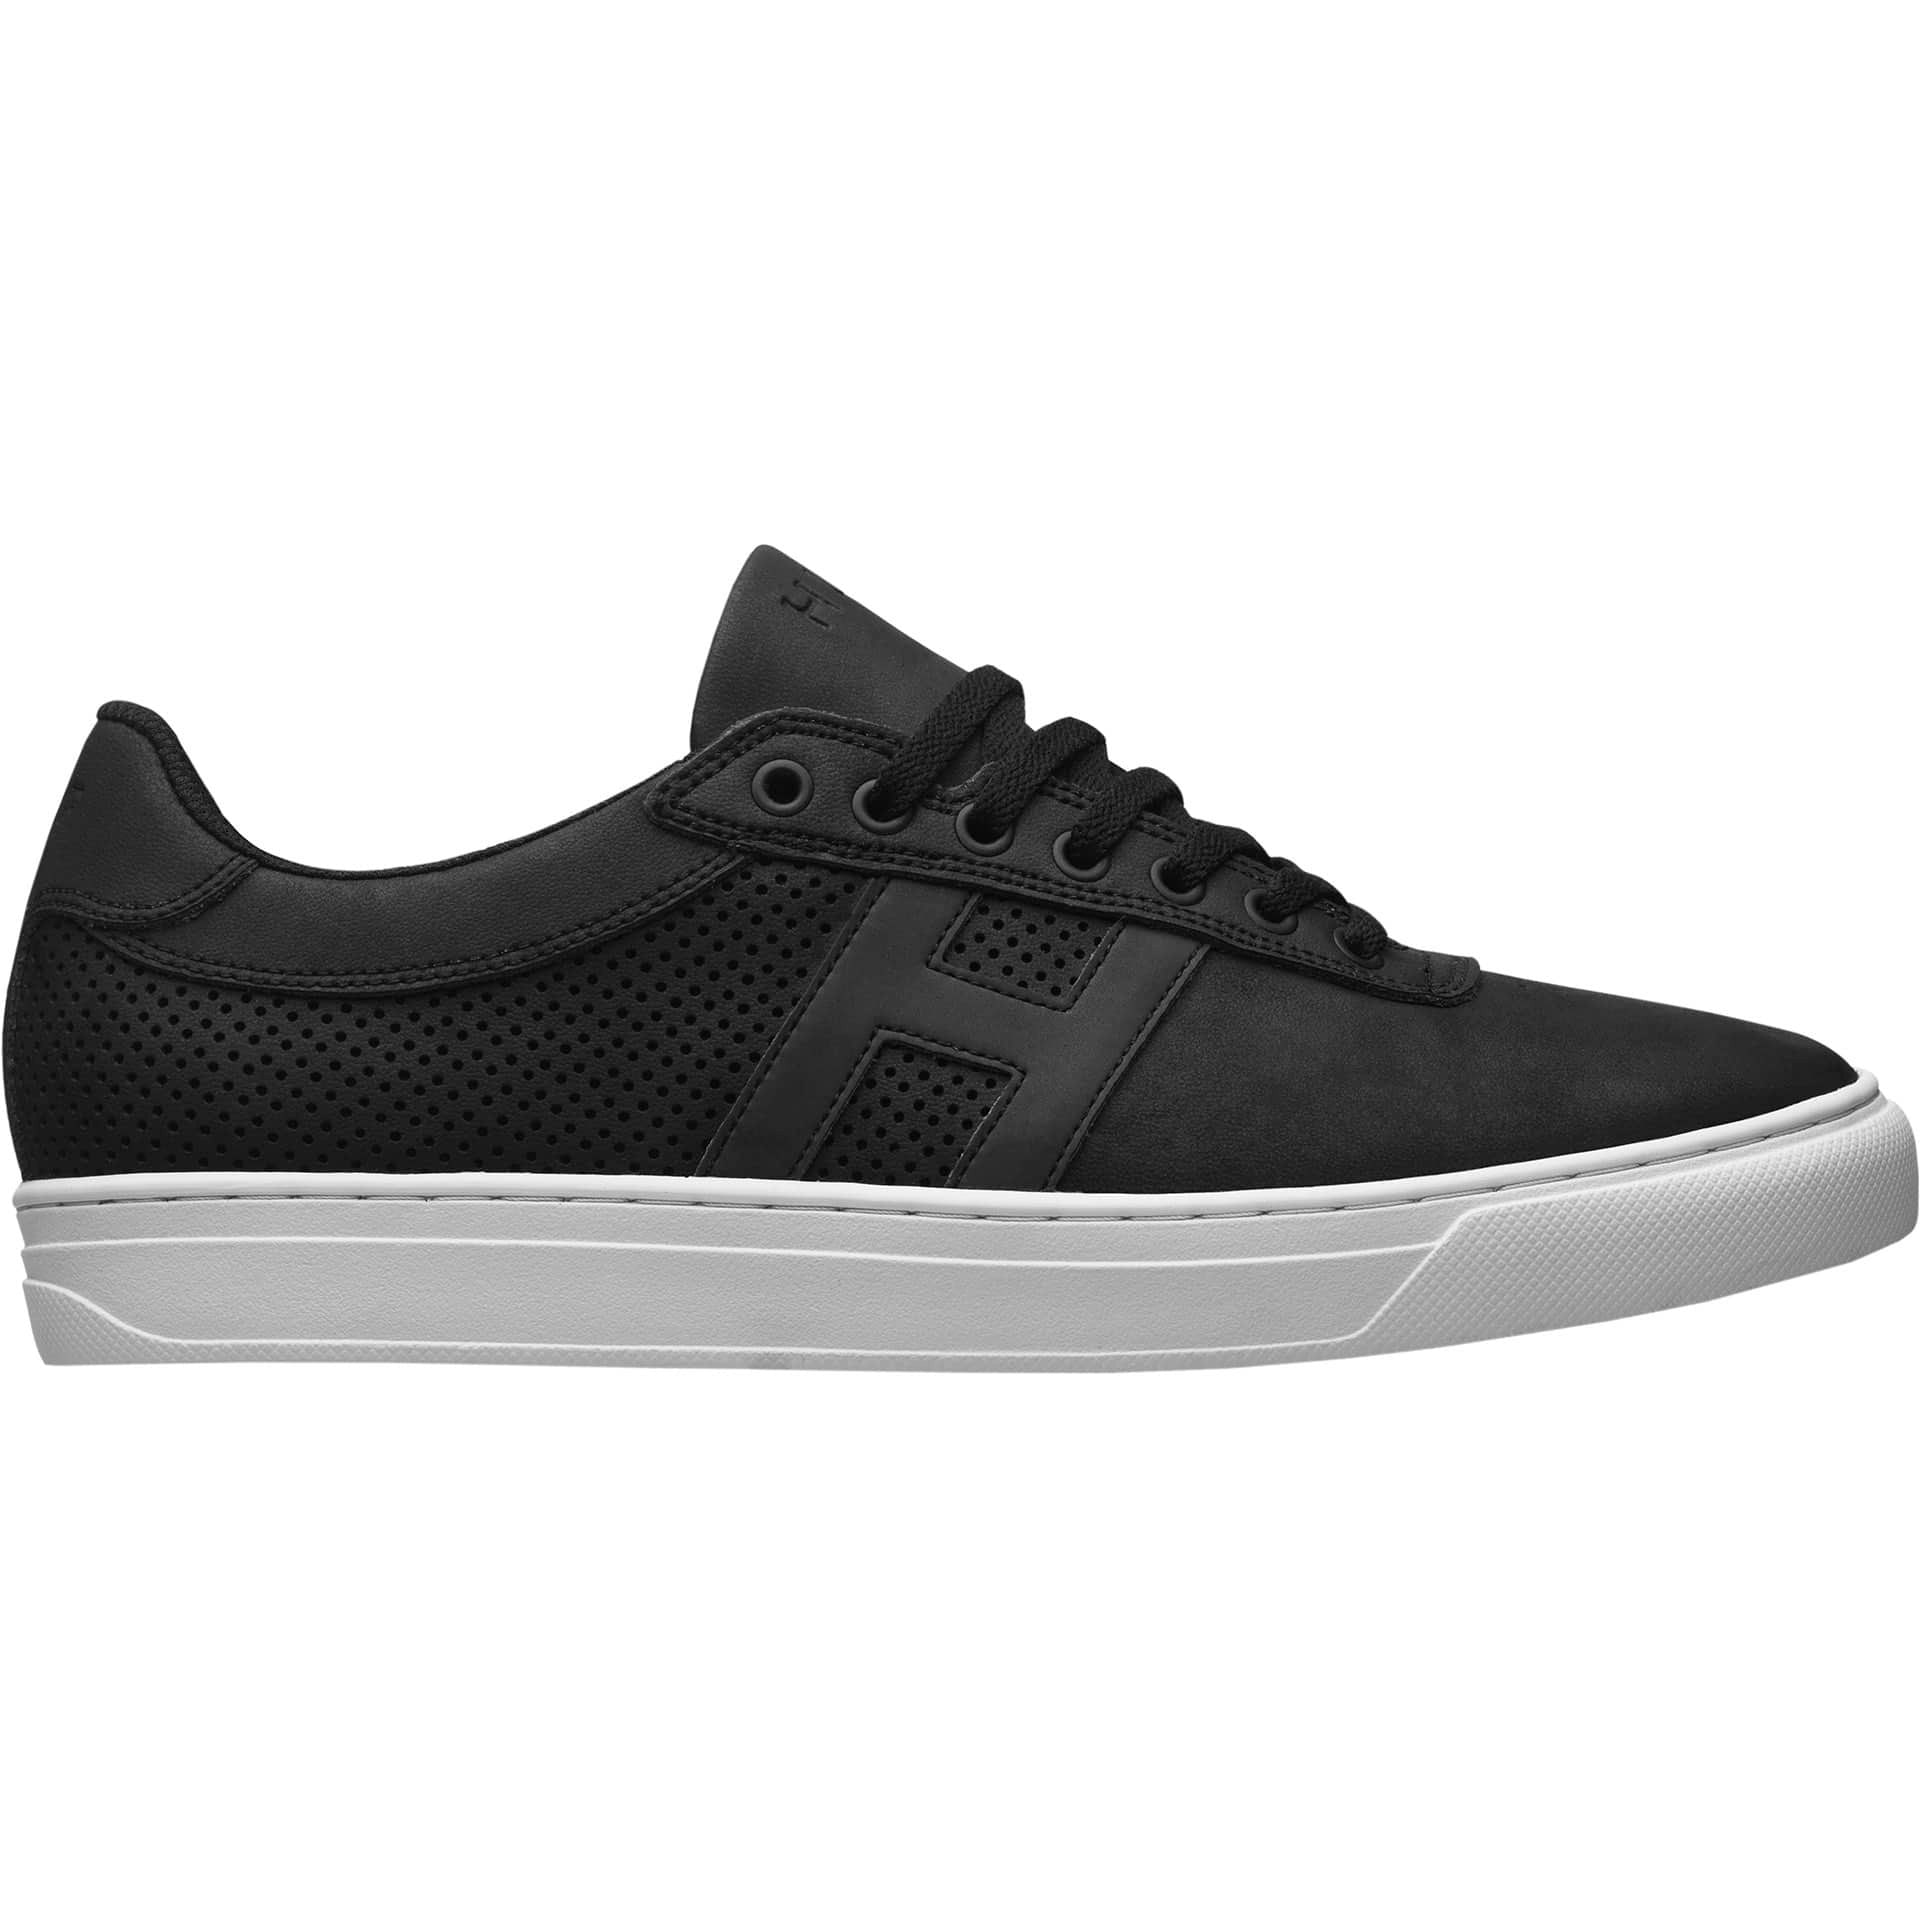 Image of Huf Soto Skate Shoes - Black Perf